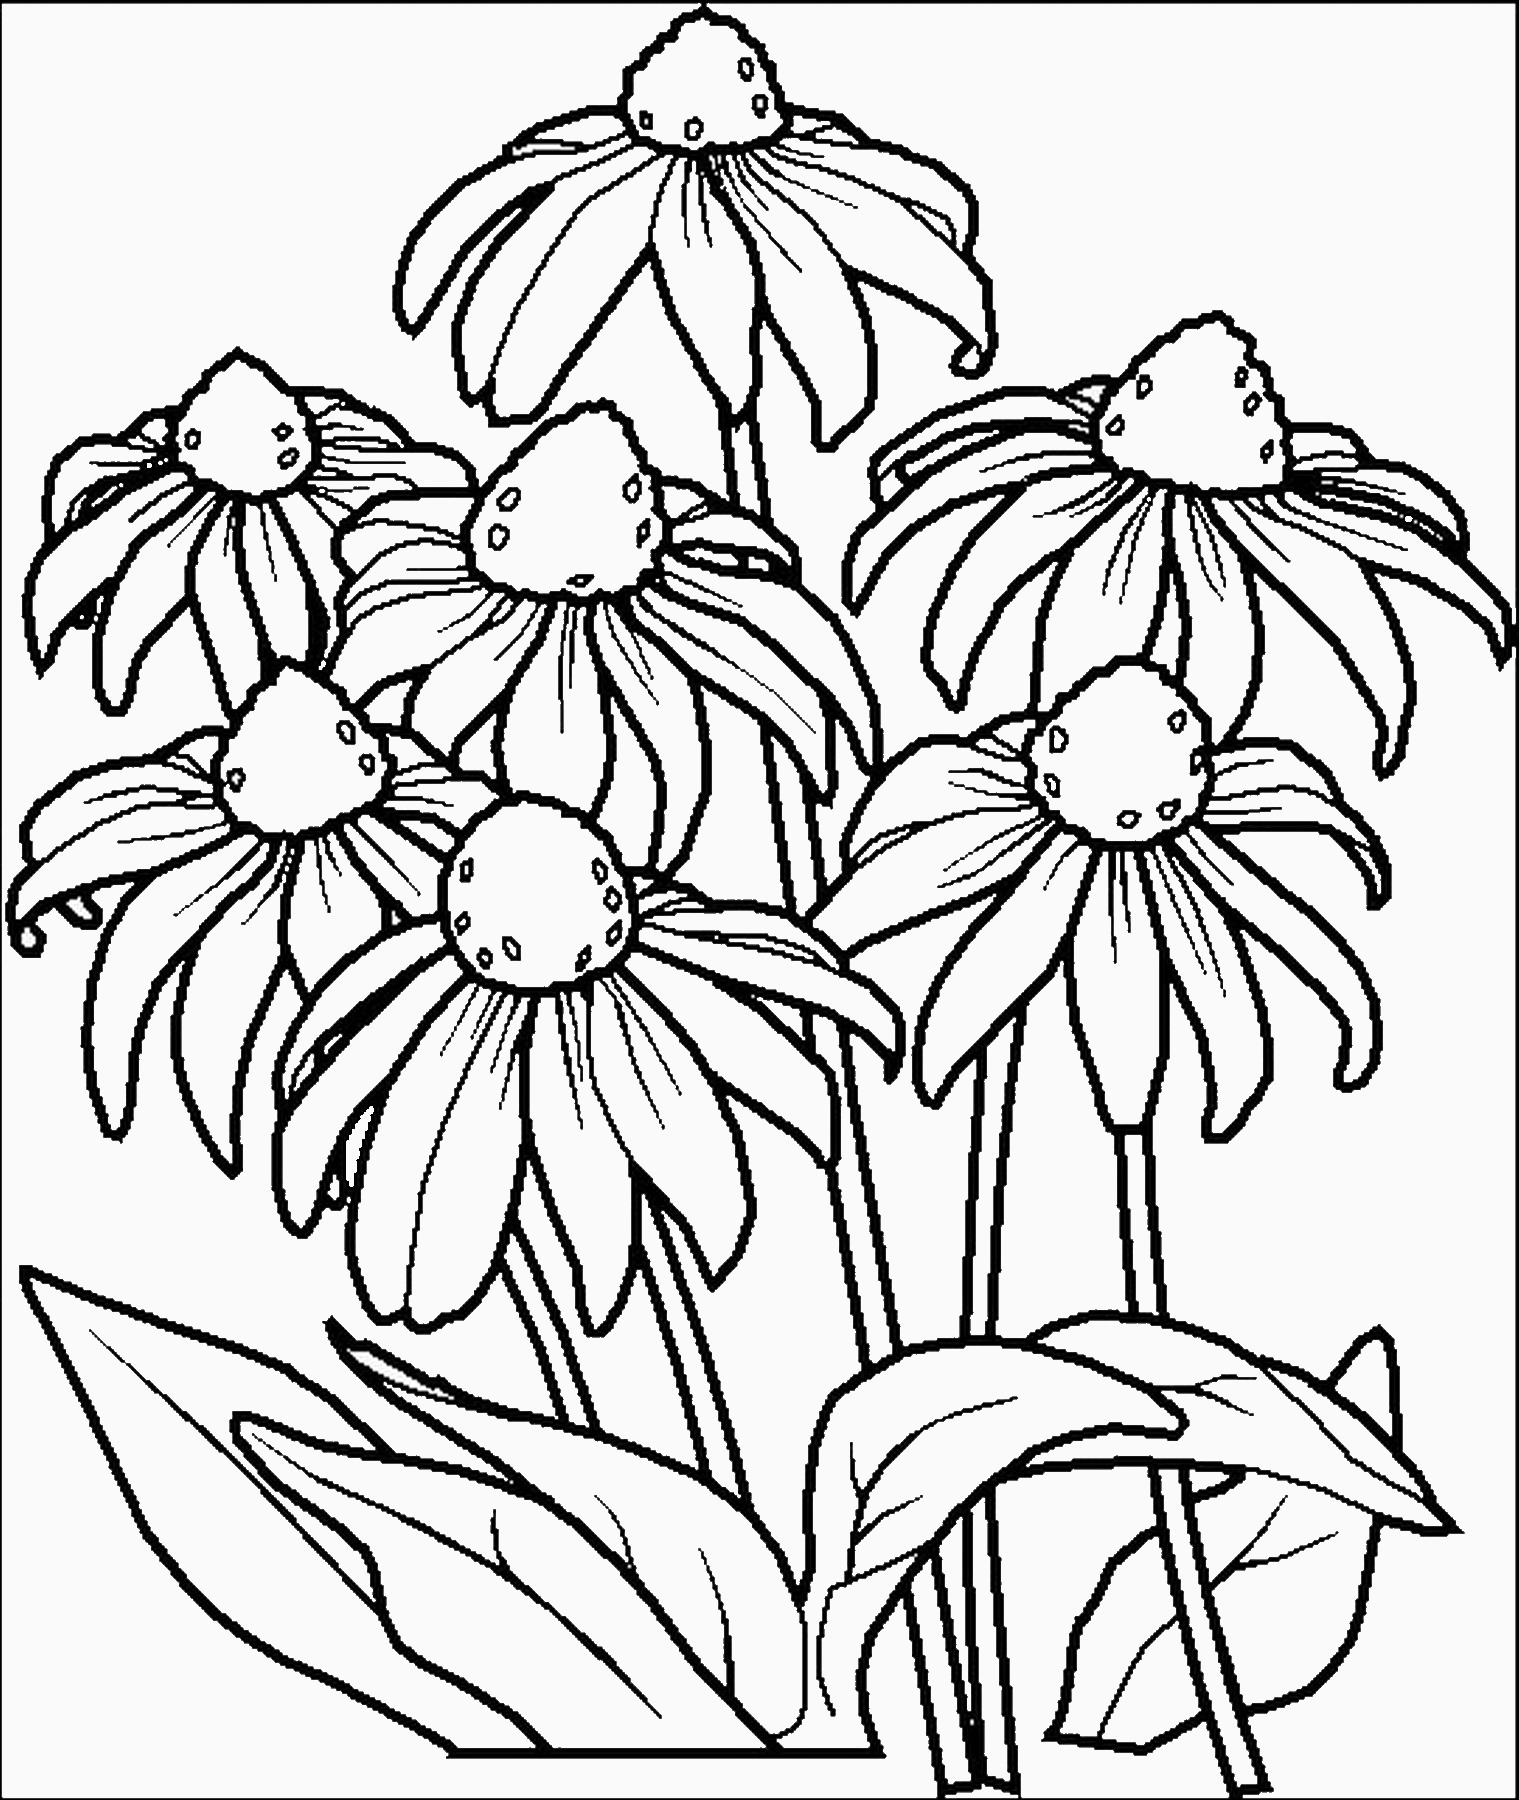 flower coloring pages to print flower13 flowers coloring pages coloring page book for kids coloring print to flower pages